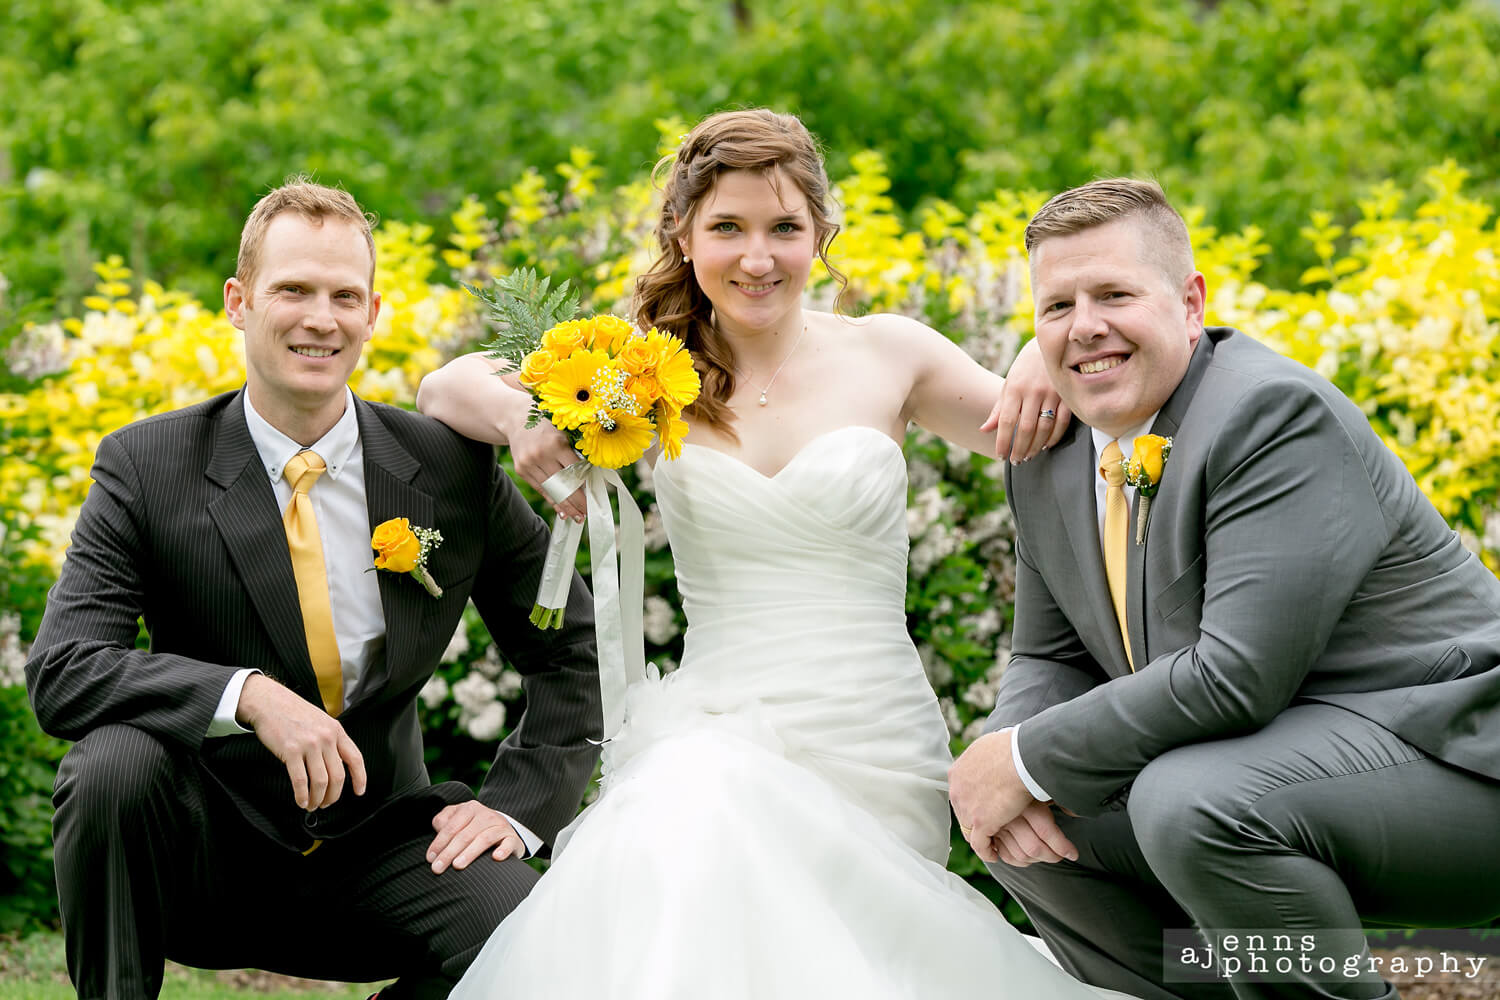 The bride crouching in the grass leaning on the groomsmen